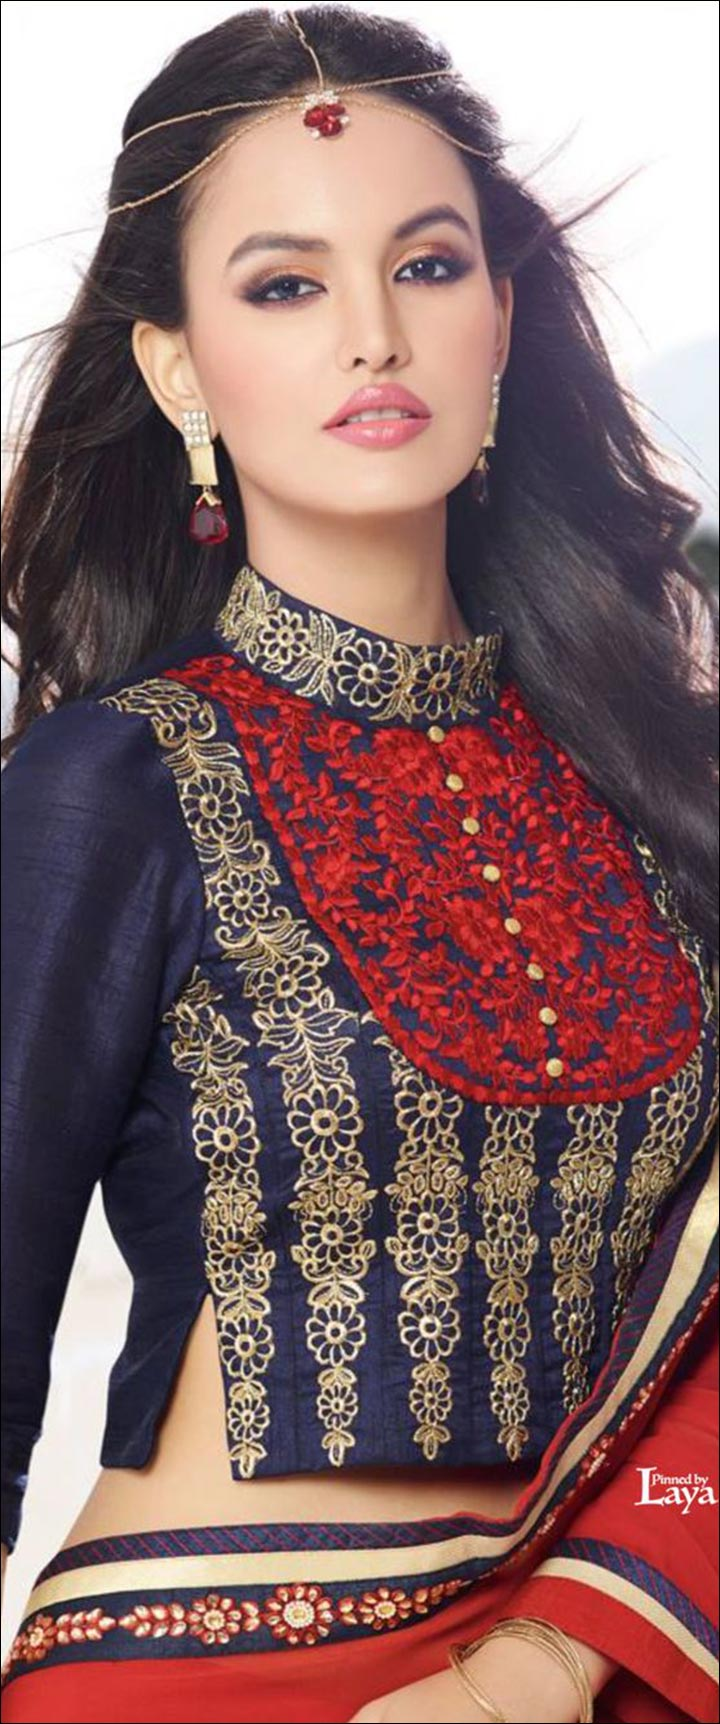 High Neck Blouse Designs - Fancy Blue And Red High Neck Zardozi Work Blouse